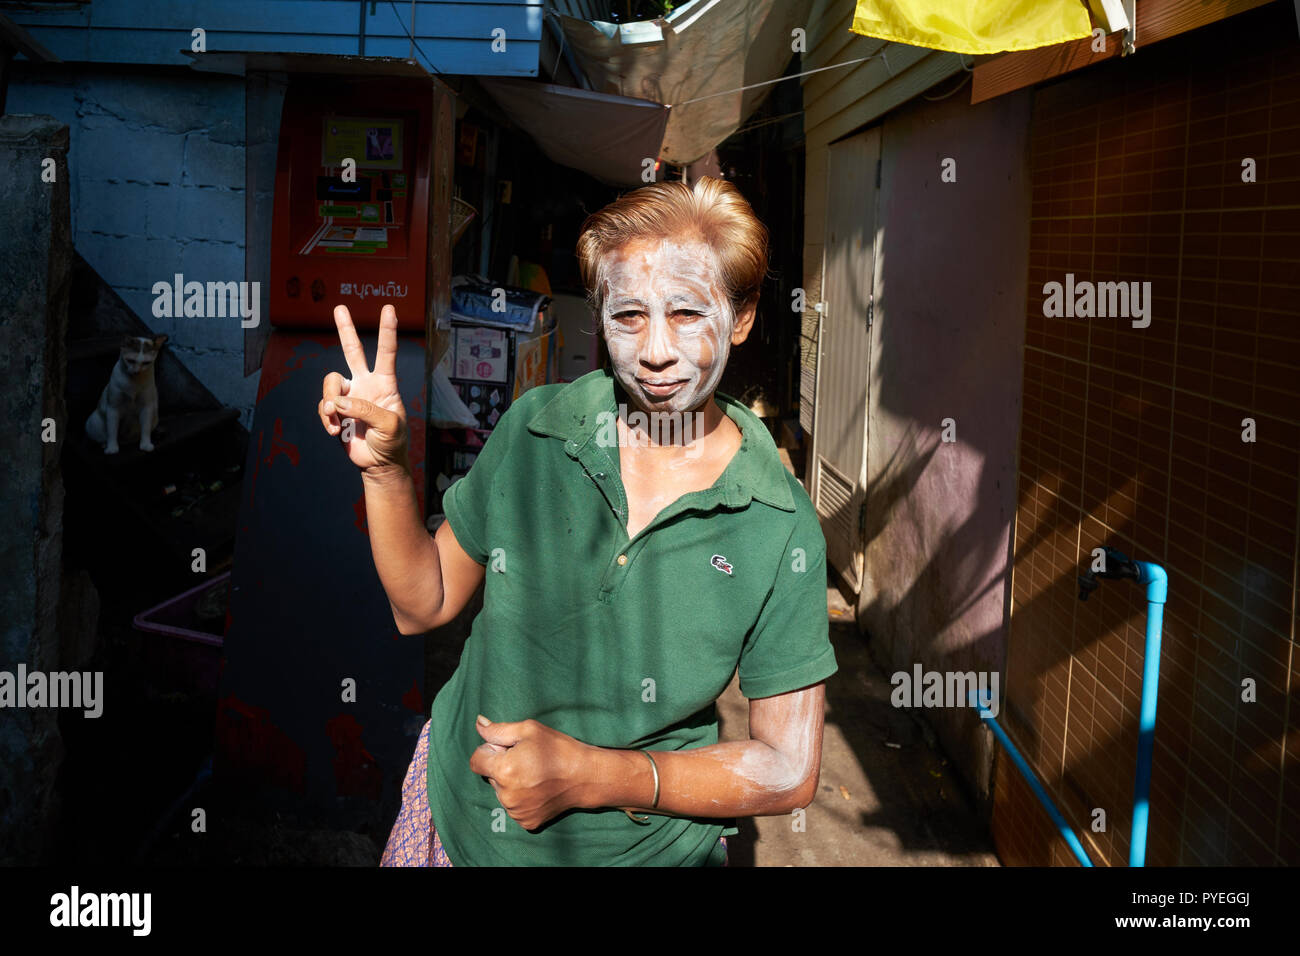 The ubiquitous V sign, performed by a Thai woman in a lower end neighbourhood in Bangkok, Thailand, her face covered in talcum powder to keep cool - Stock Image